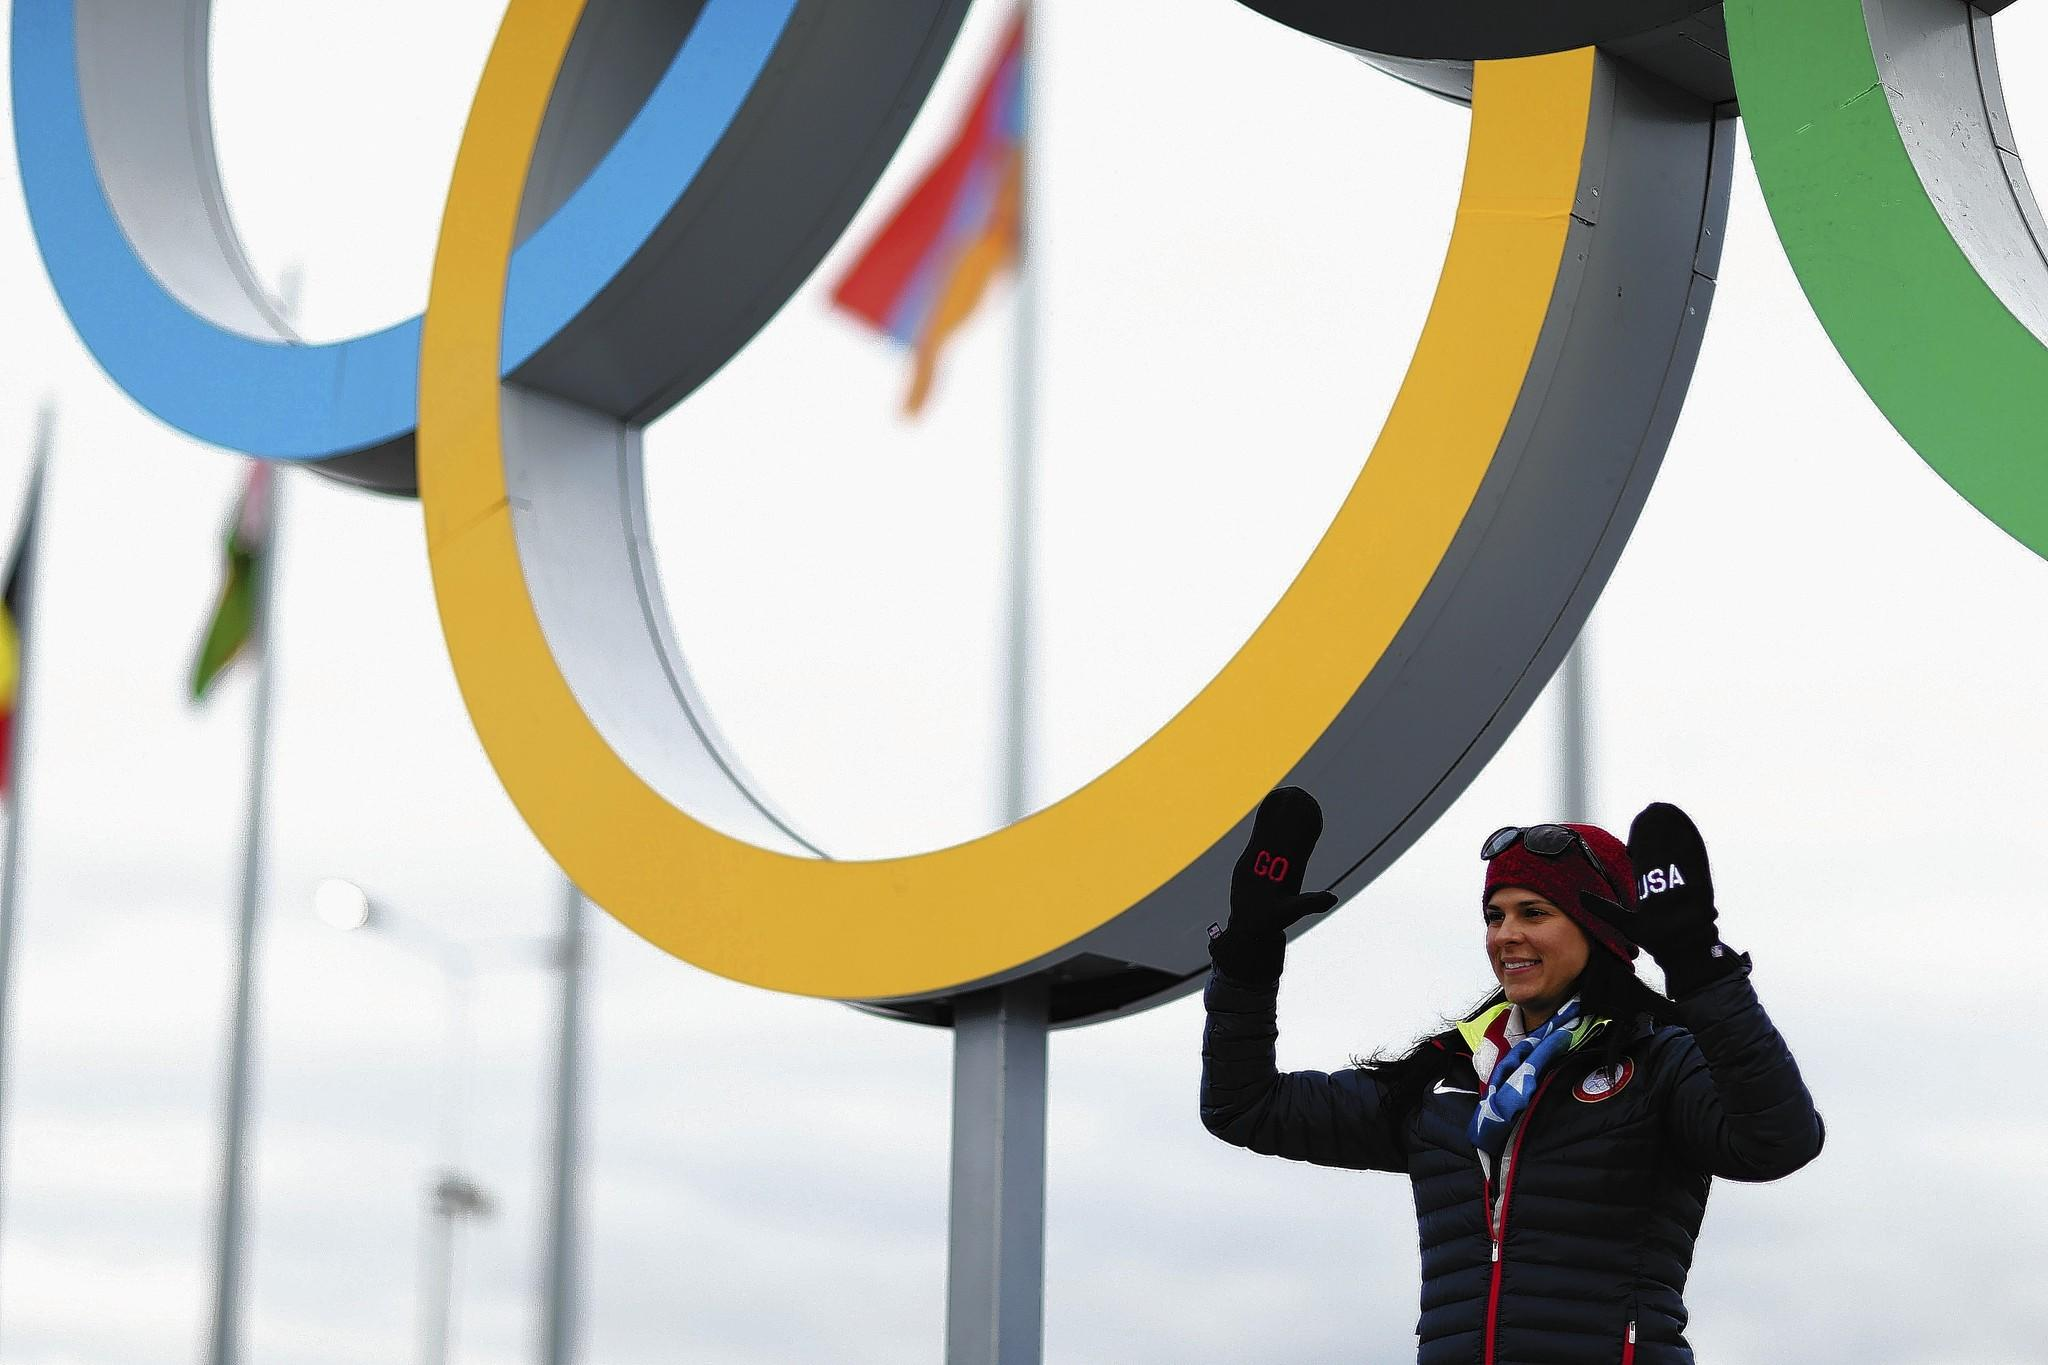 SOCHI, RUSSIA - FEBRUARY 05: Speed skater Brittany Bowe of the United States poses in front of the Olympic rings ahead of the Sochi 2014 Winter Olympics at the Olympic Park on February 5, 2014 in Sochi, Russia. (Photo by Clive Mason/Getty Images) ** OUTS - ELSENT, FPG, TCN - OUTS * NM, PH, VA if sourced by CT, LA or MoD **